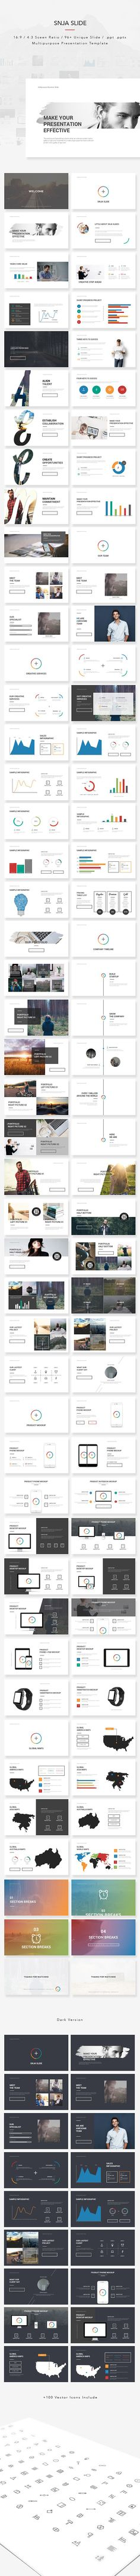 Snja Slide Powerpoint Presentation Template. Download here: http://graphicriver.net/item/snja-slide-powerpoint-presentation/16262026?ref=ksioks